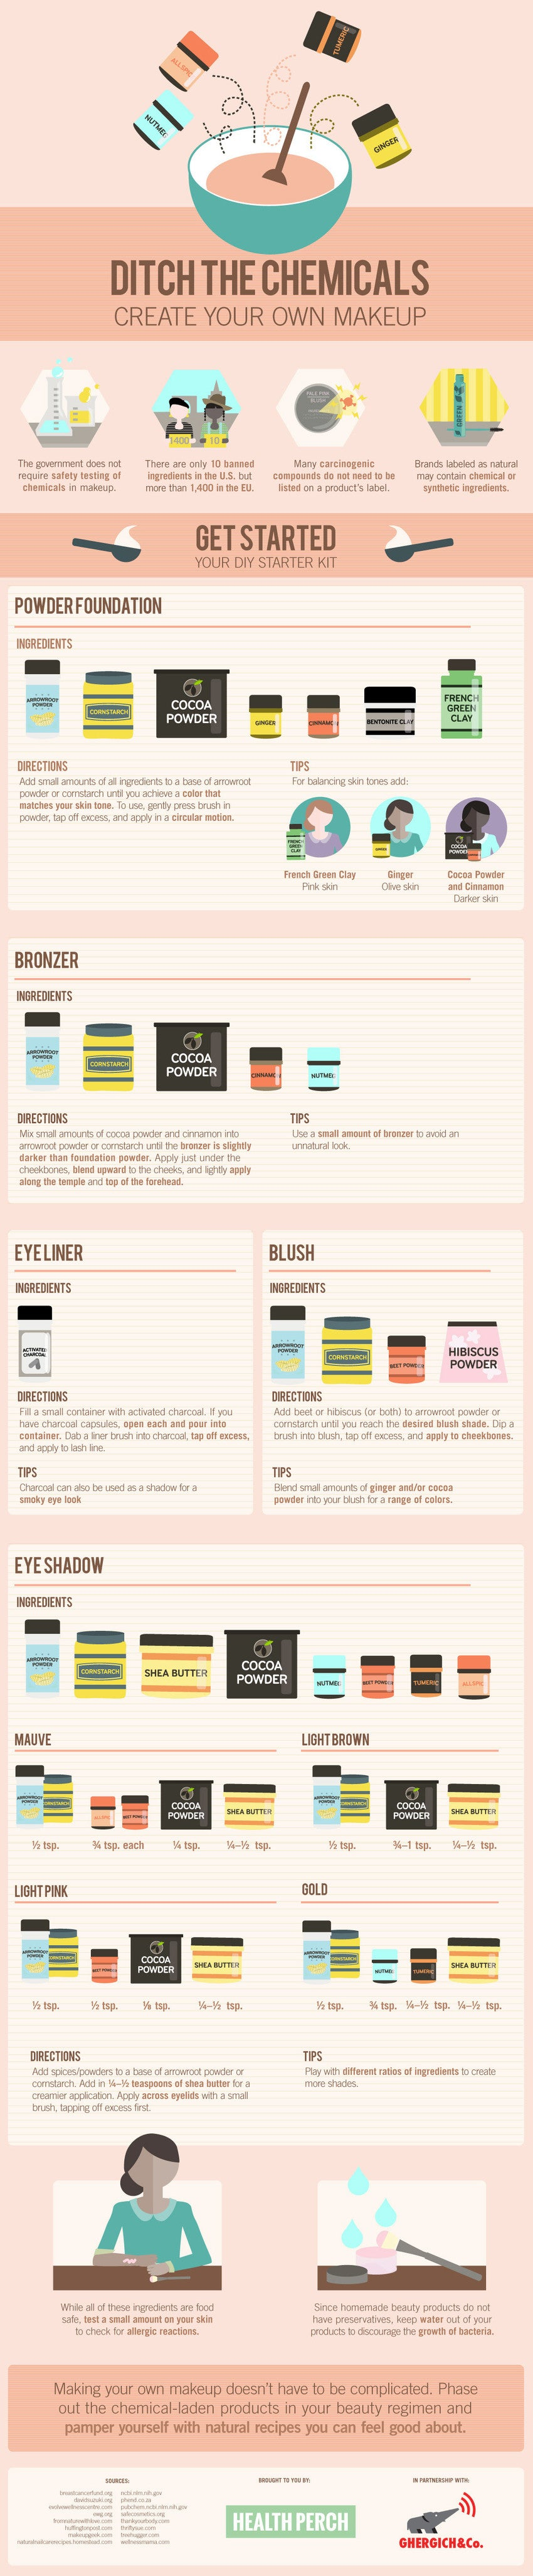 Create Your Own Makeup: Health Perch's Guide to Chemical Free Cosmetics